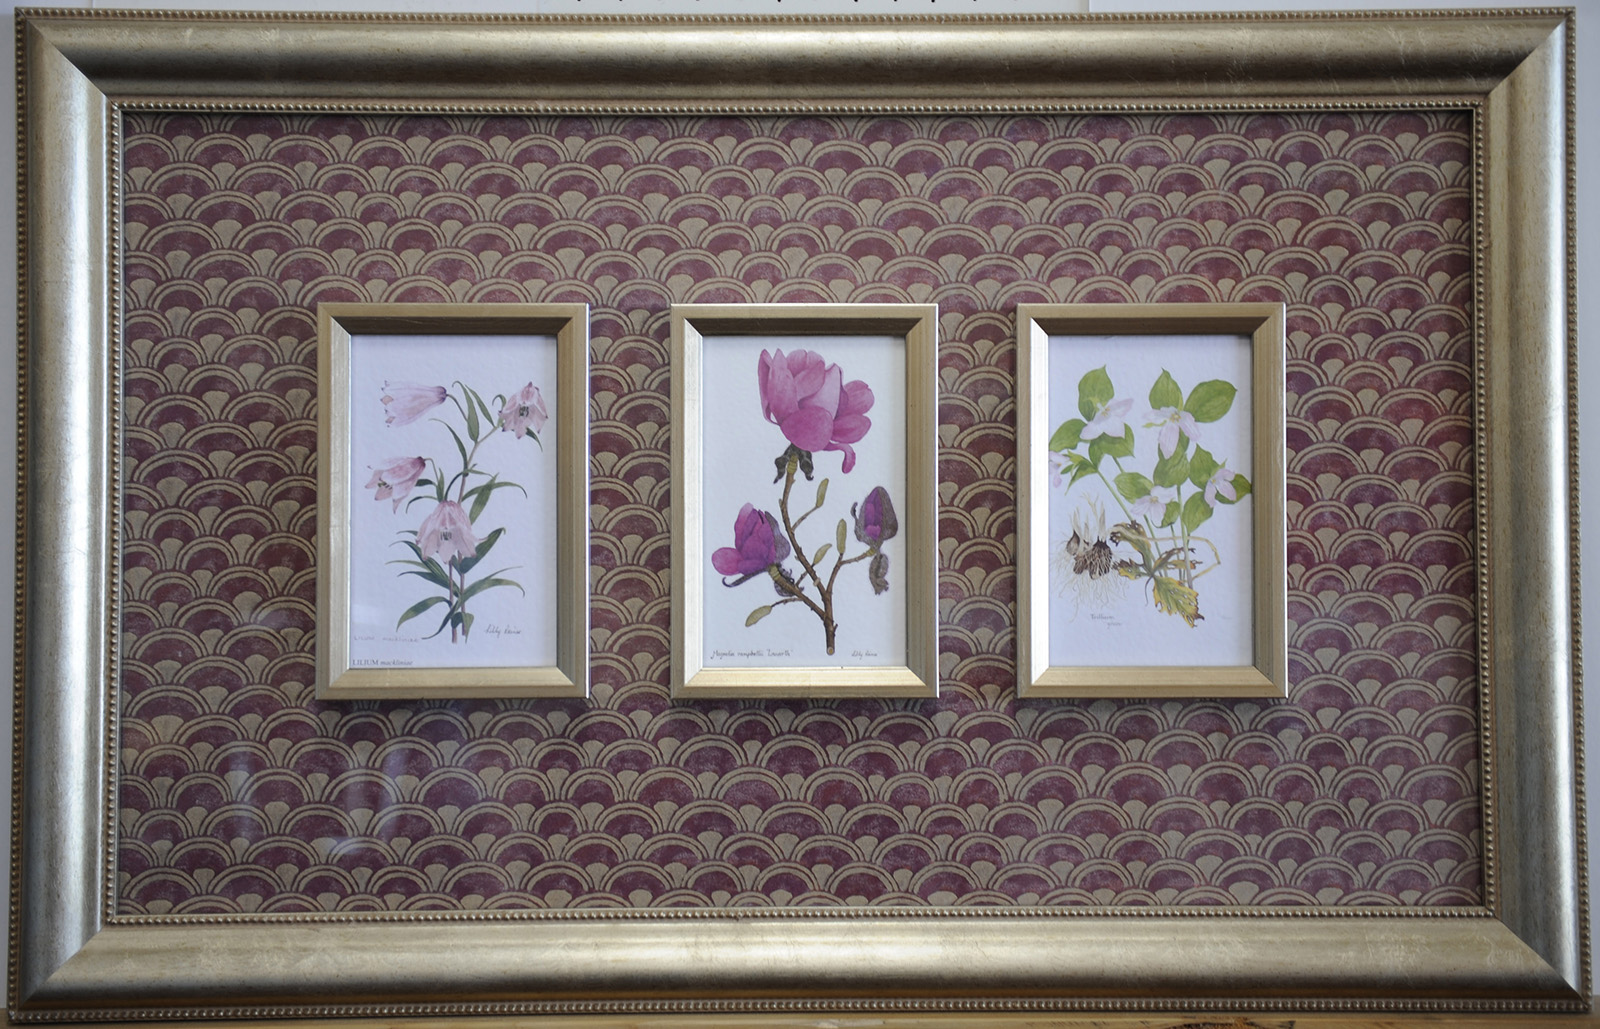 Effects Picture Framing | Perth Picture Framing | Perth Printing ...